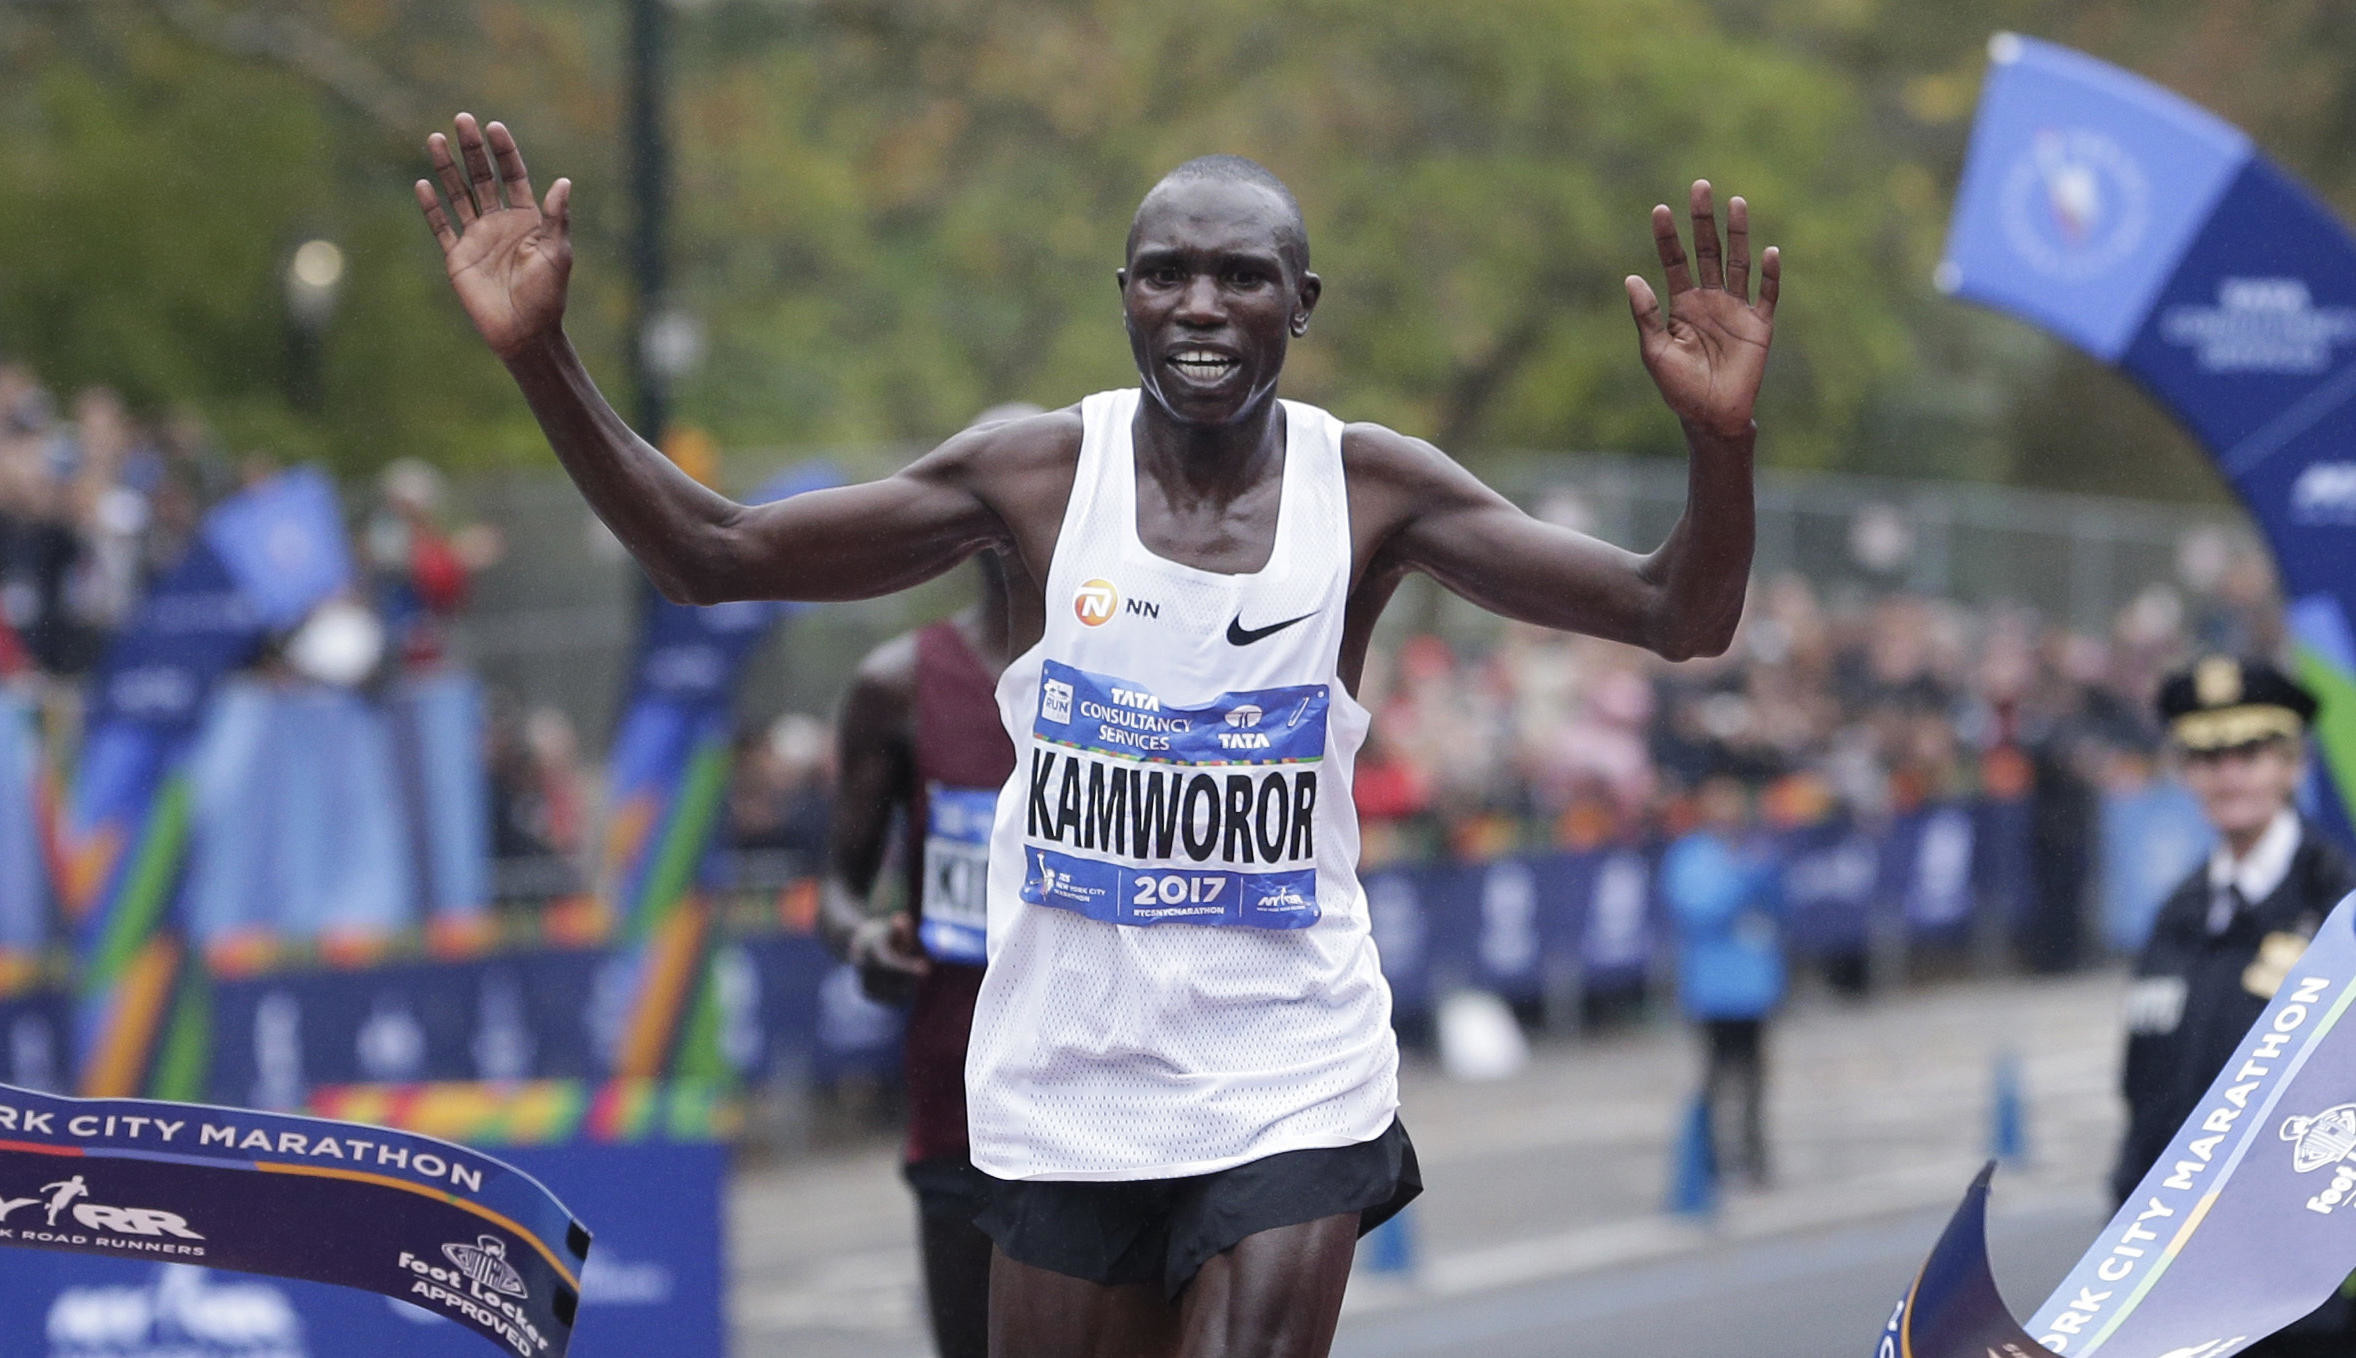 Geoffrey Kamworor is ready to reclaim his New York City Marathon title